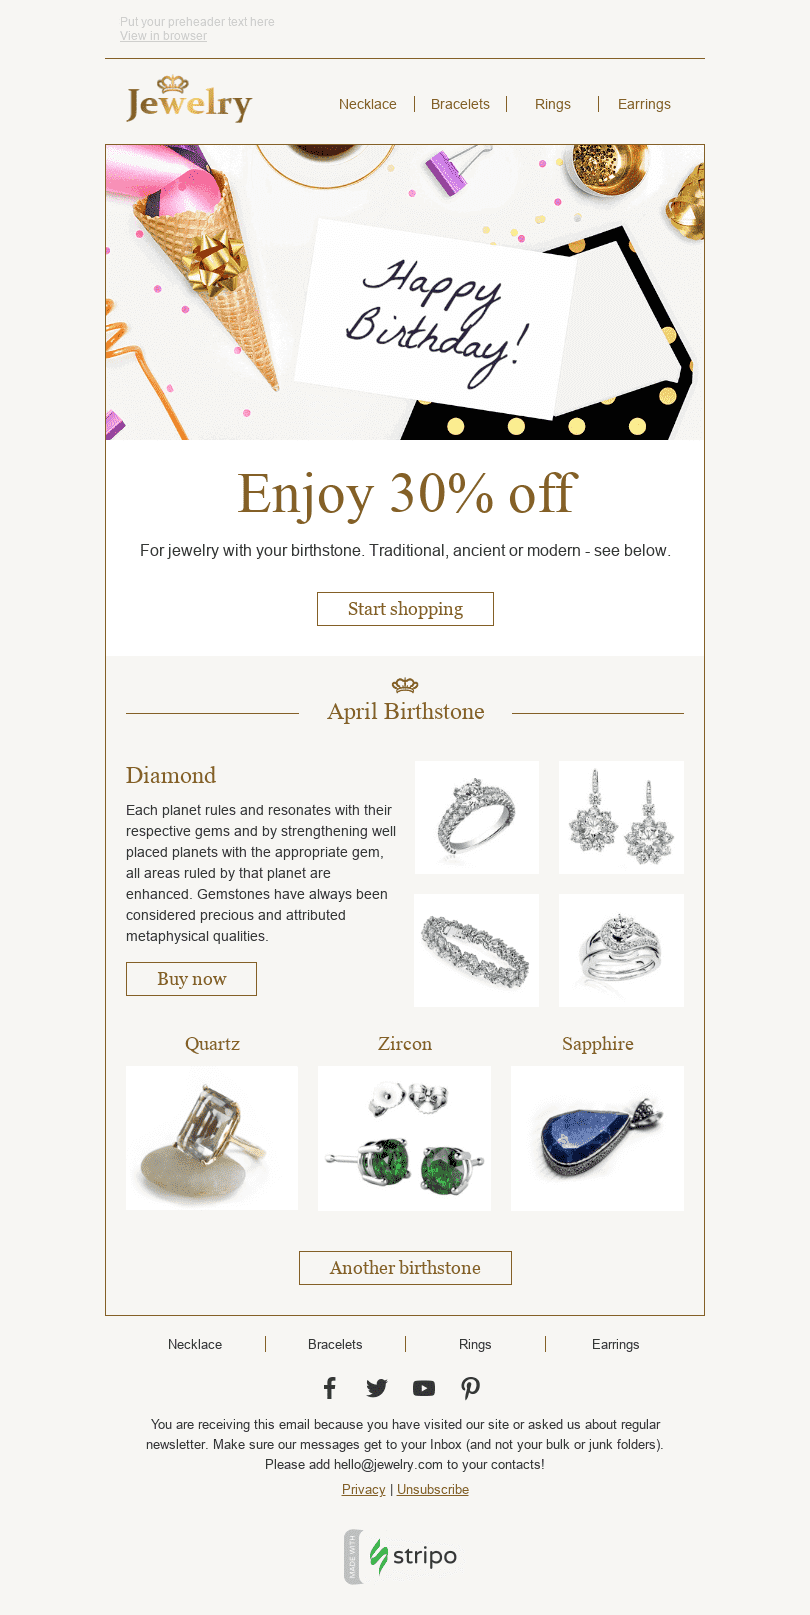 Stripo Jewelry Holiday newsletter Happy Birthday Talisman email web